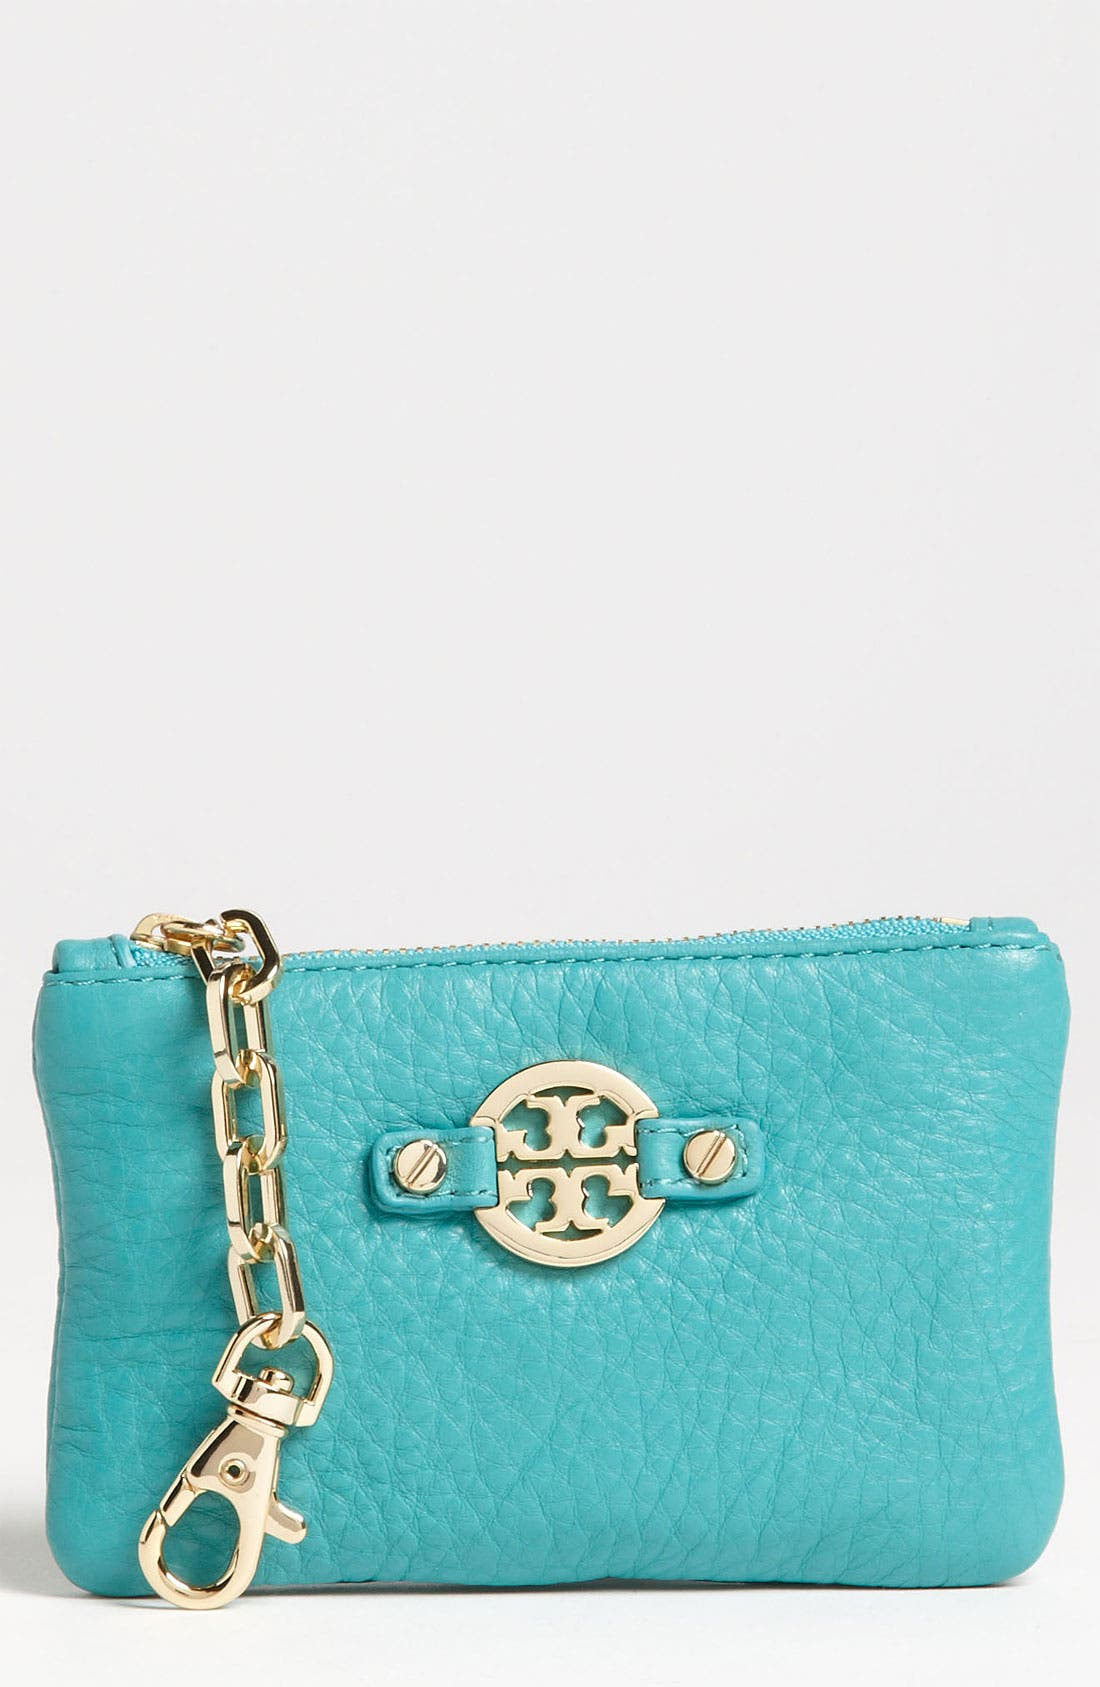 Main Image - Tory Burch 'Amanda' Coin Purse